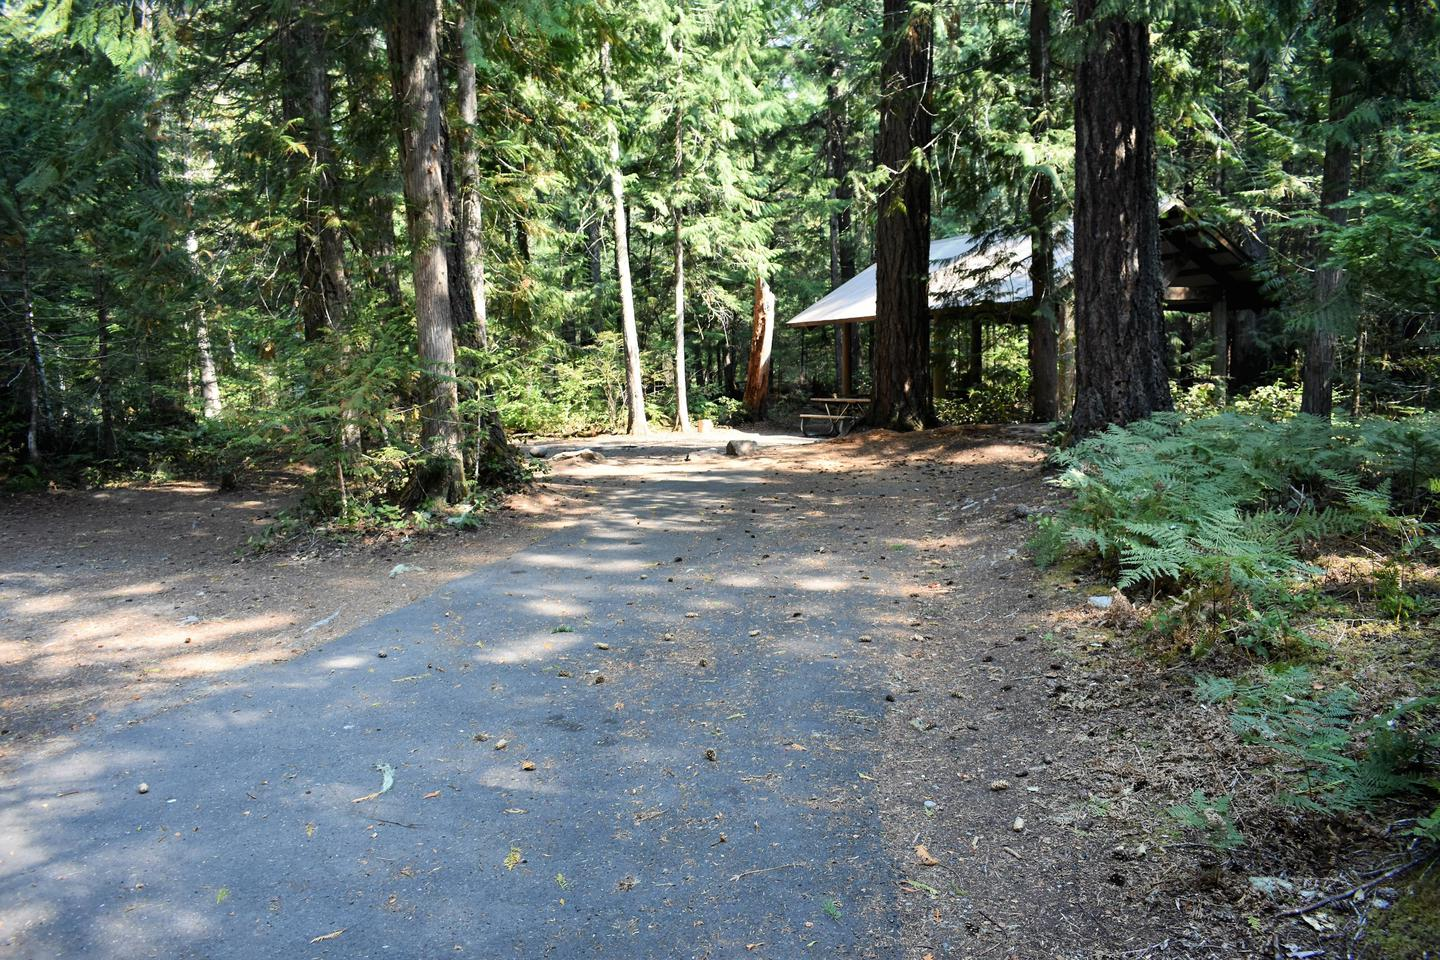 Group shelter in distance with parking area in foregroundMain parking area which can accommodate RV's and trailer